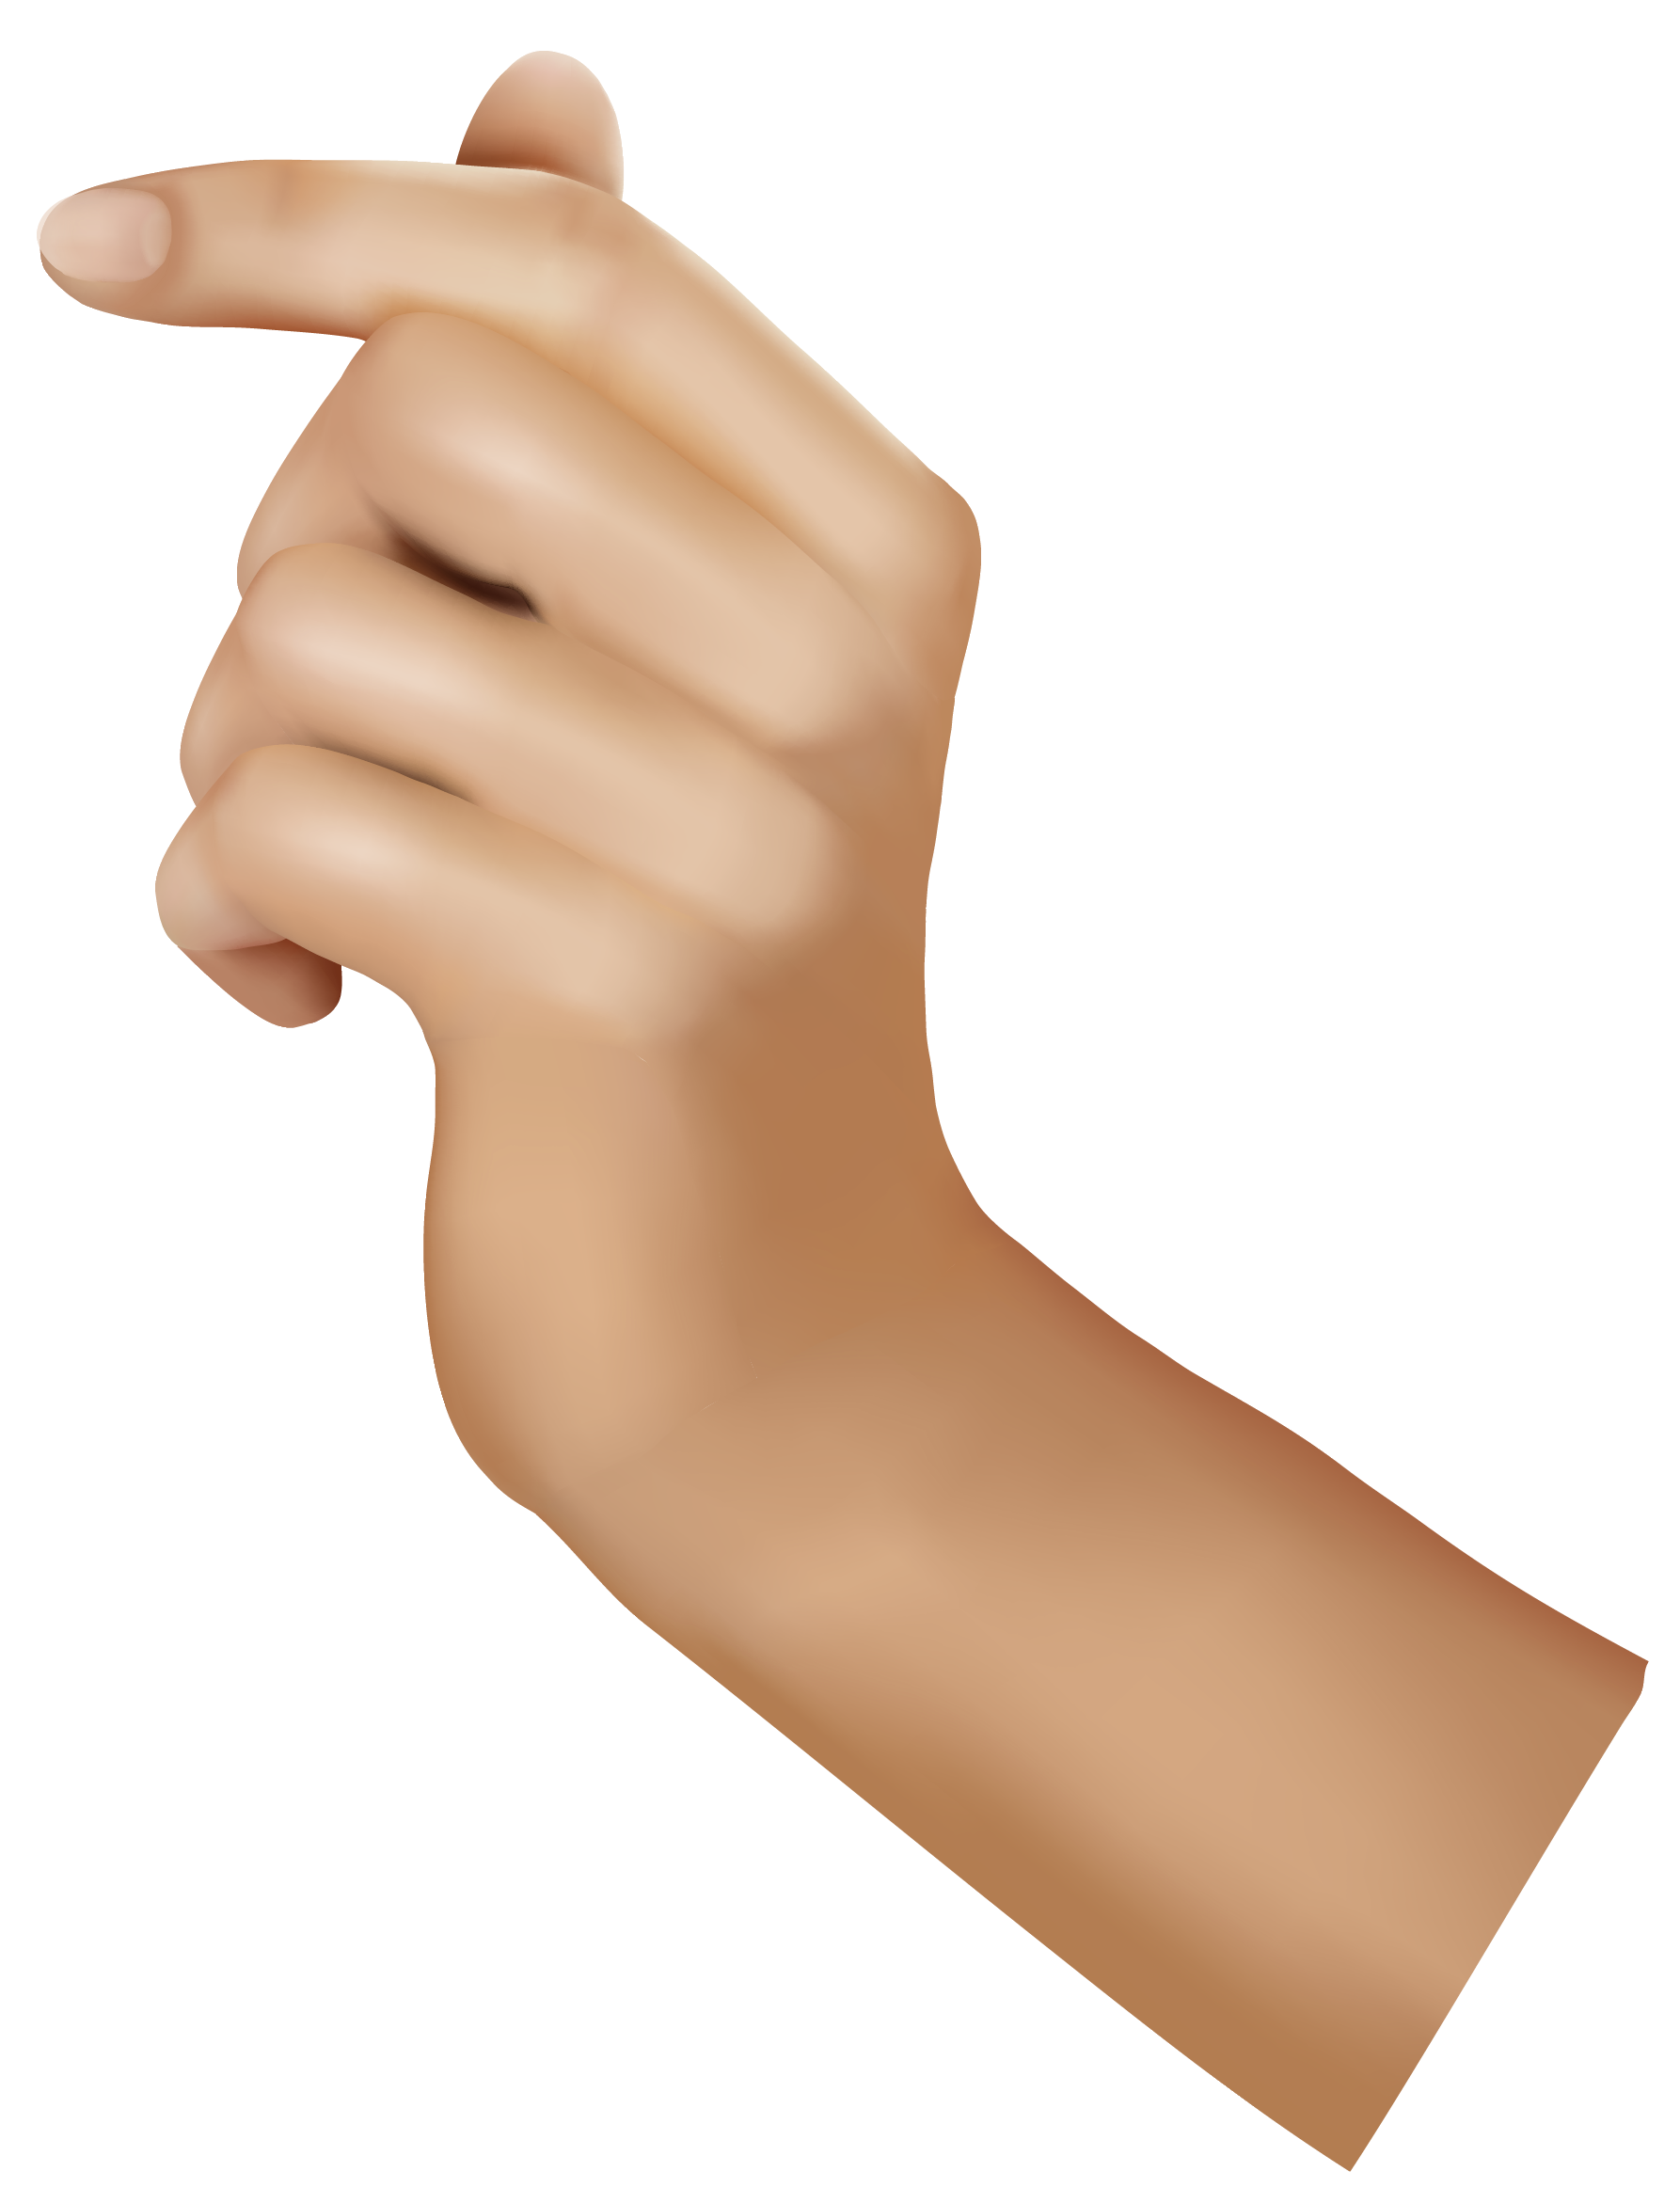 Human png image gallery. Clipart hand arm